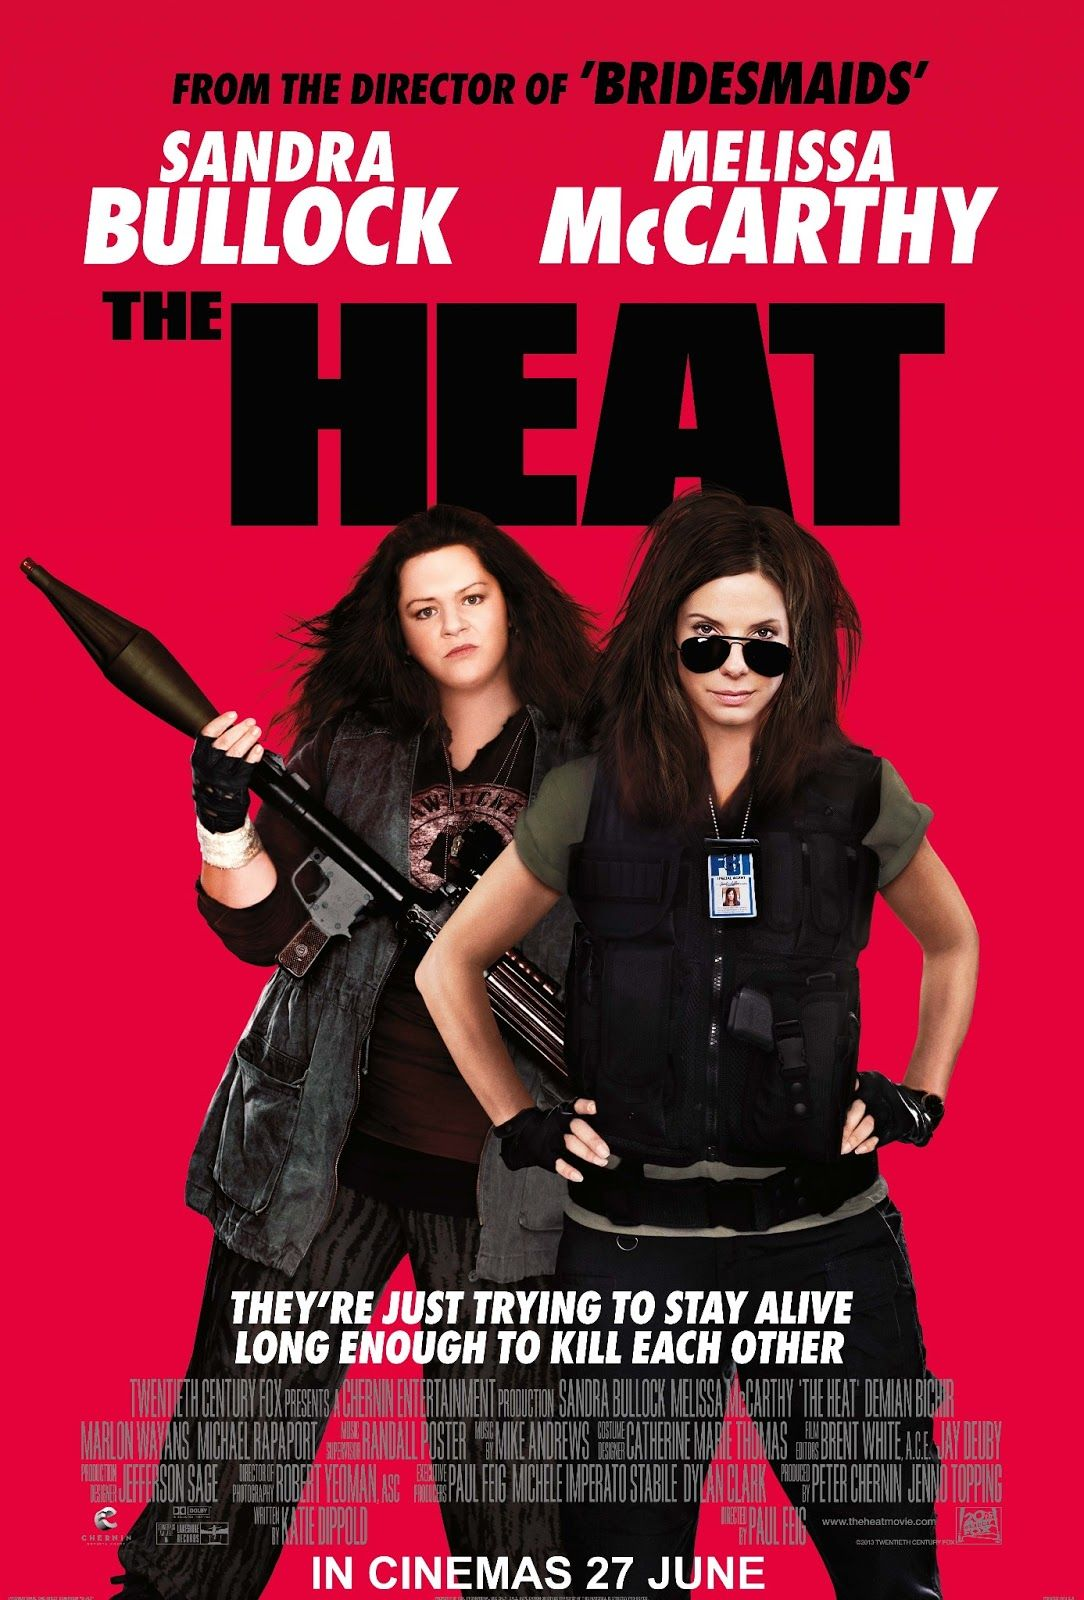 In Action Comedy The Heat Sandra Bullock And Melissa Mccarthy Star As Two Halves Of A Mismatched Cop Duo On The Trail Of Some Boston Drug Runners